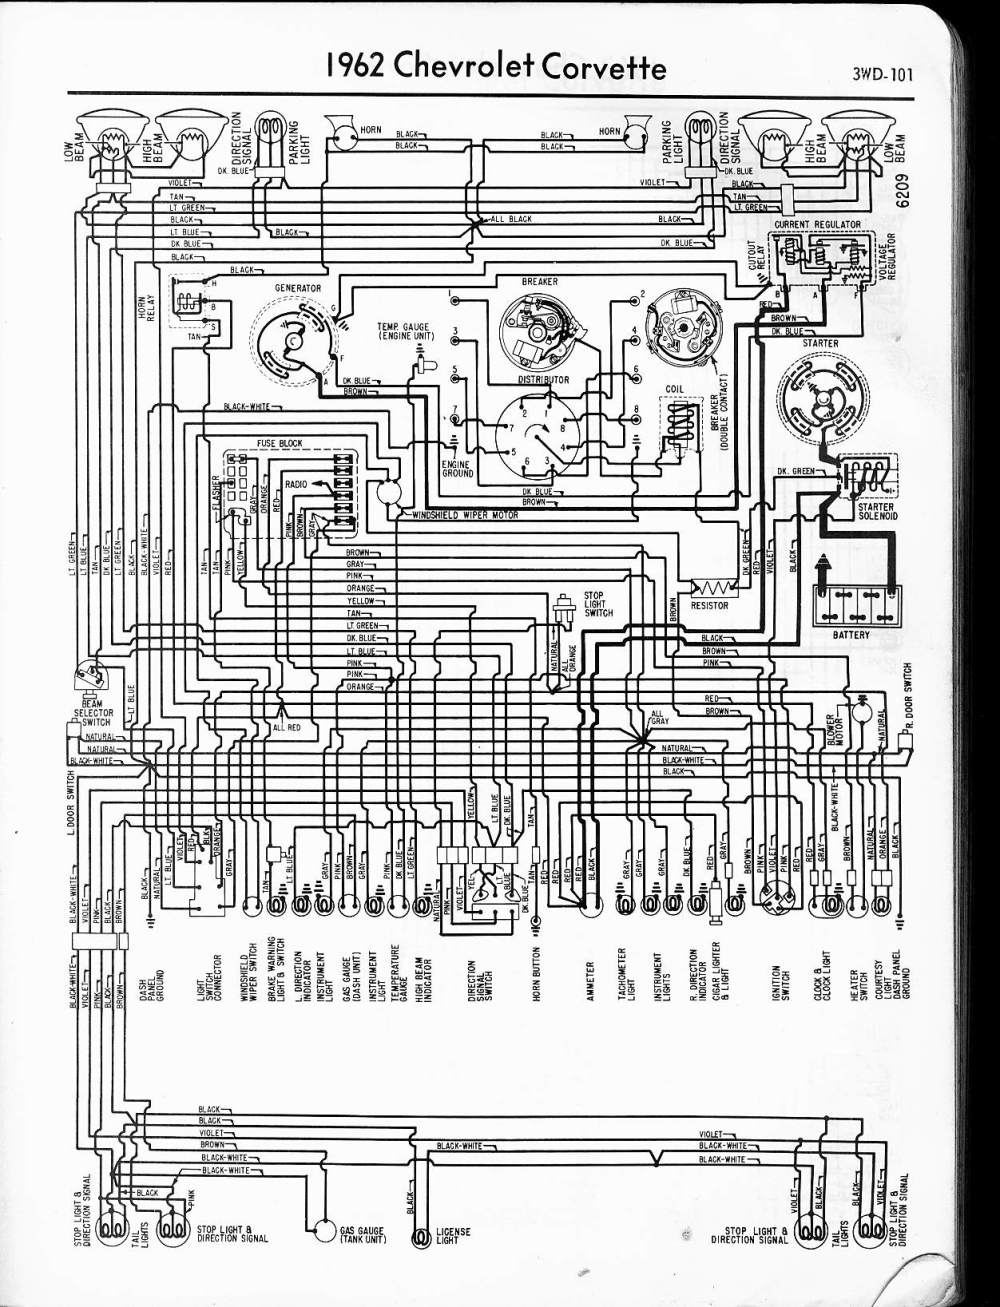 medium resolution of 1962 corvette wiring diagram wiring diagram explained 2013 vw wiring diagram 1962 corvette wiring diagram